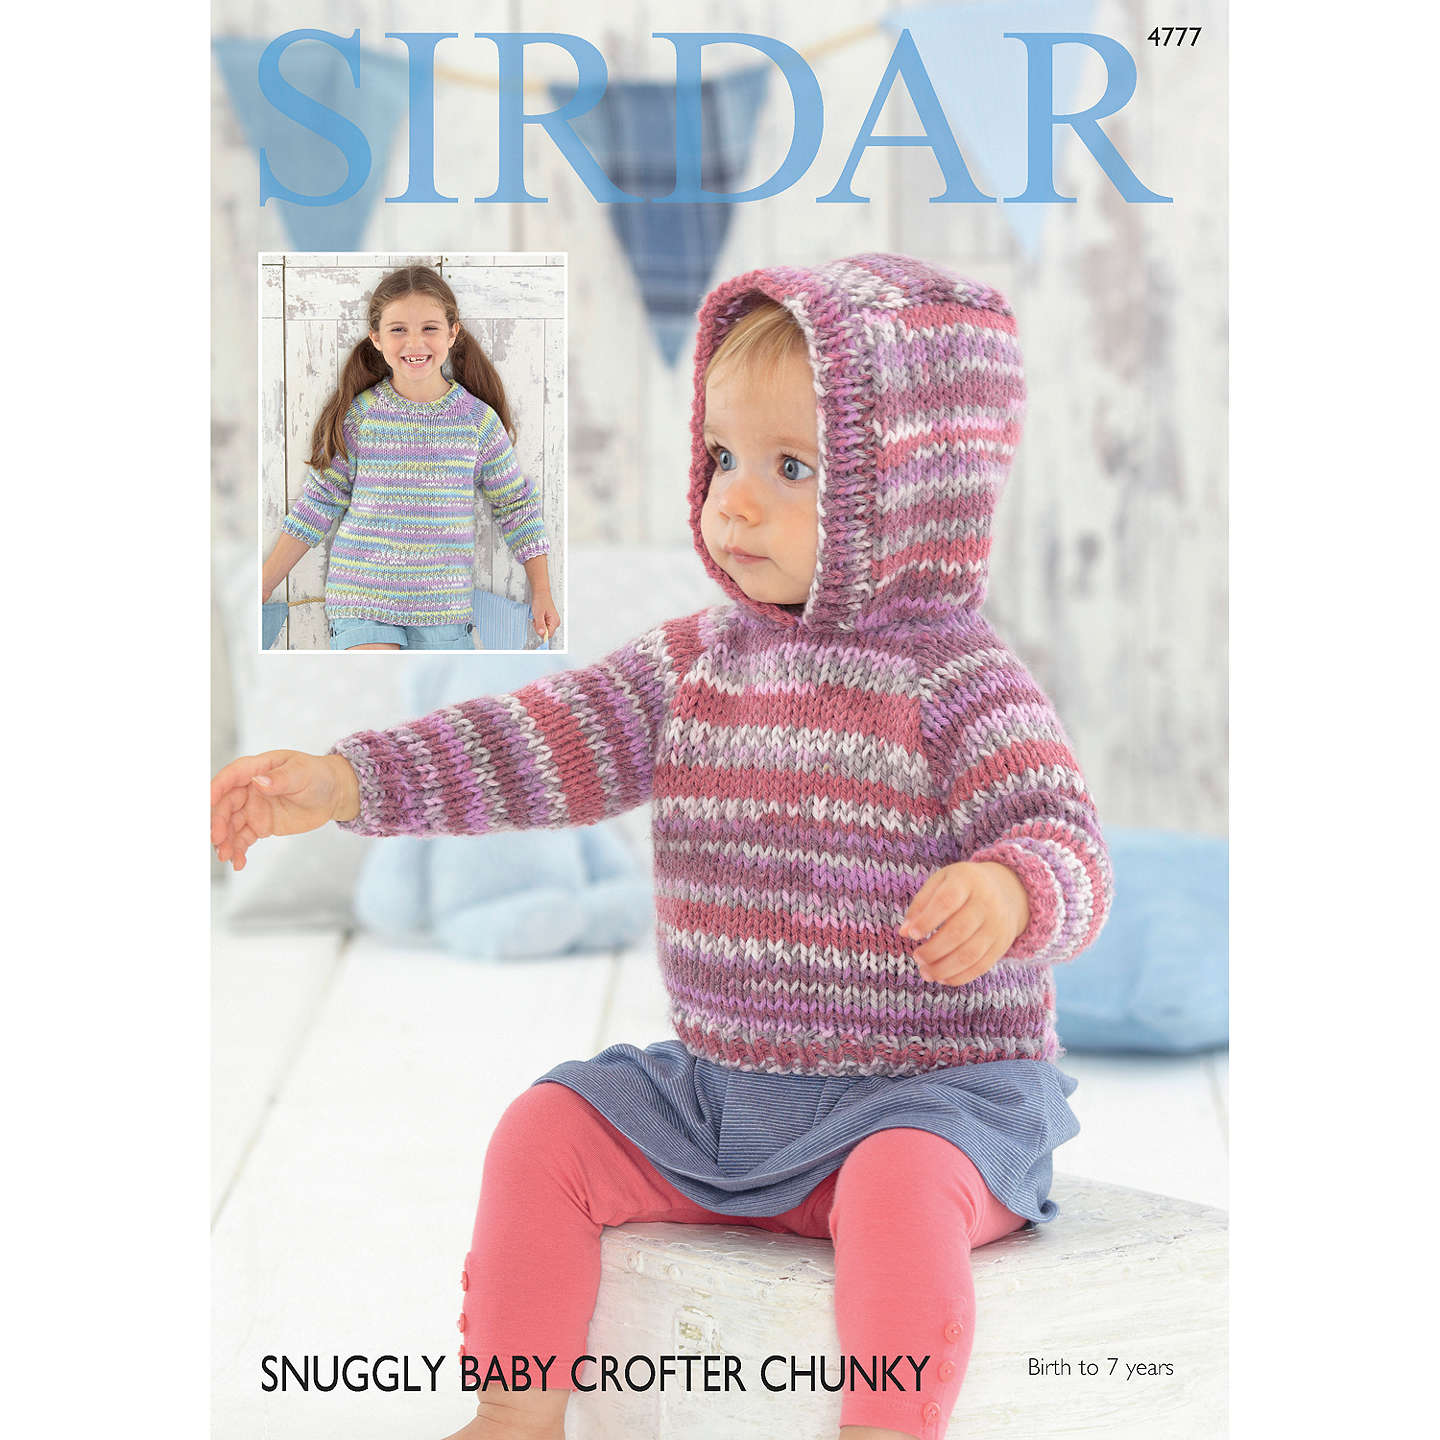 Sirdar Baby Crofter Chunky Jumper Knitting Pattern, 4777 at John Lewis